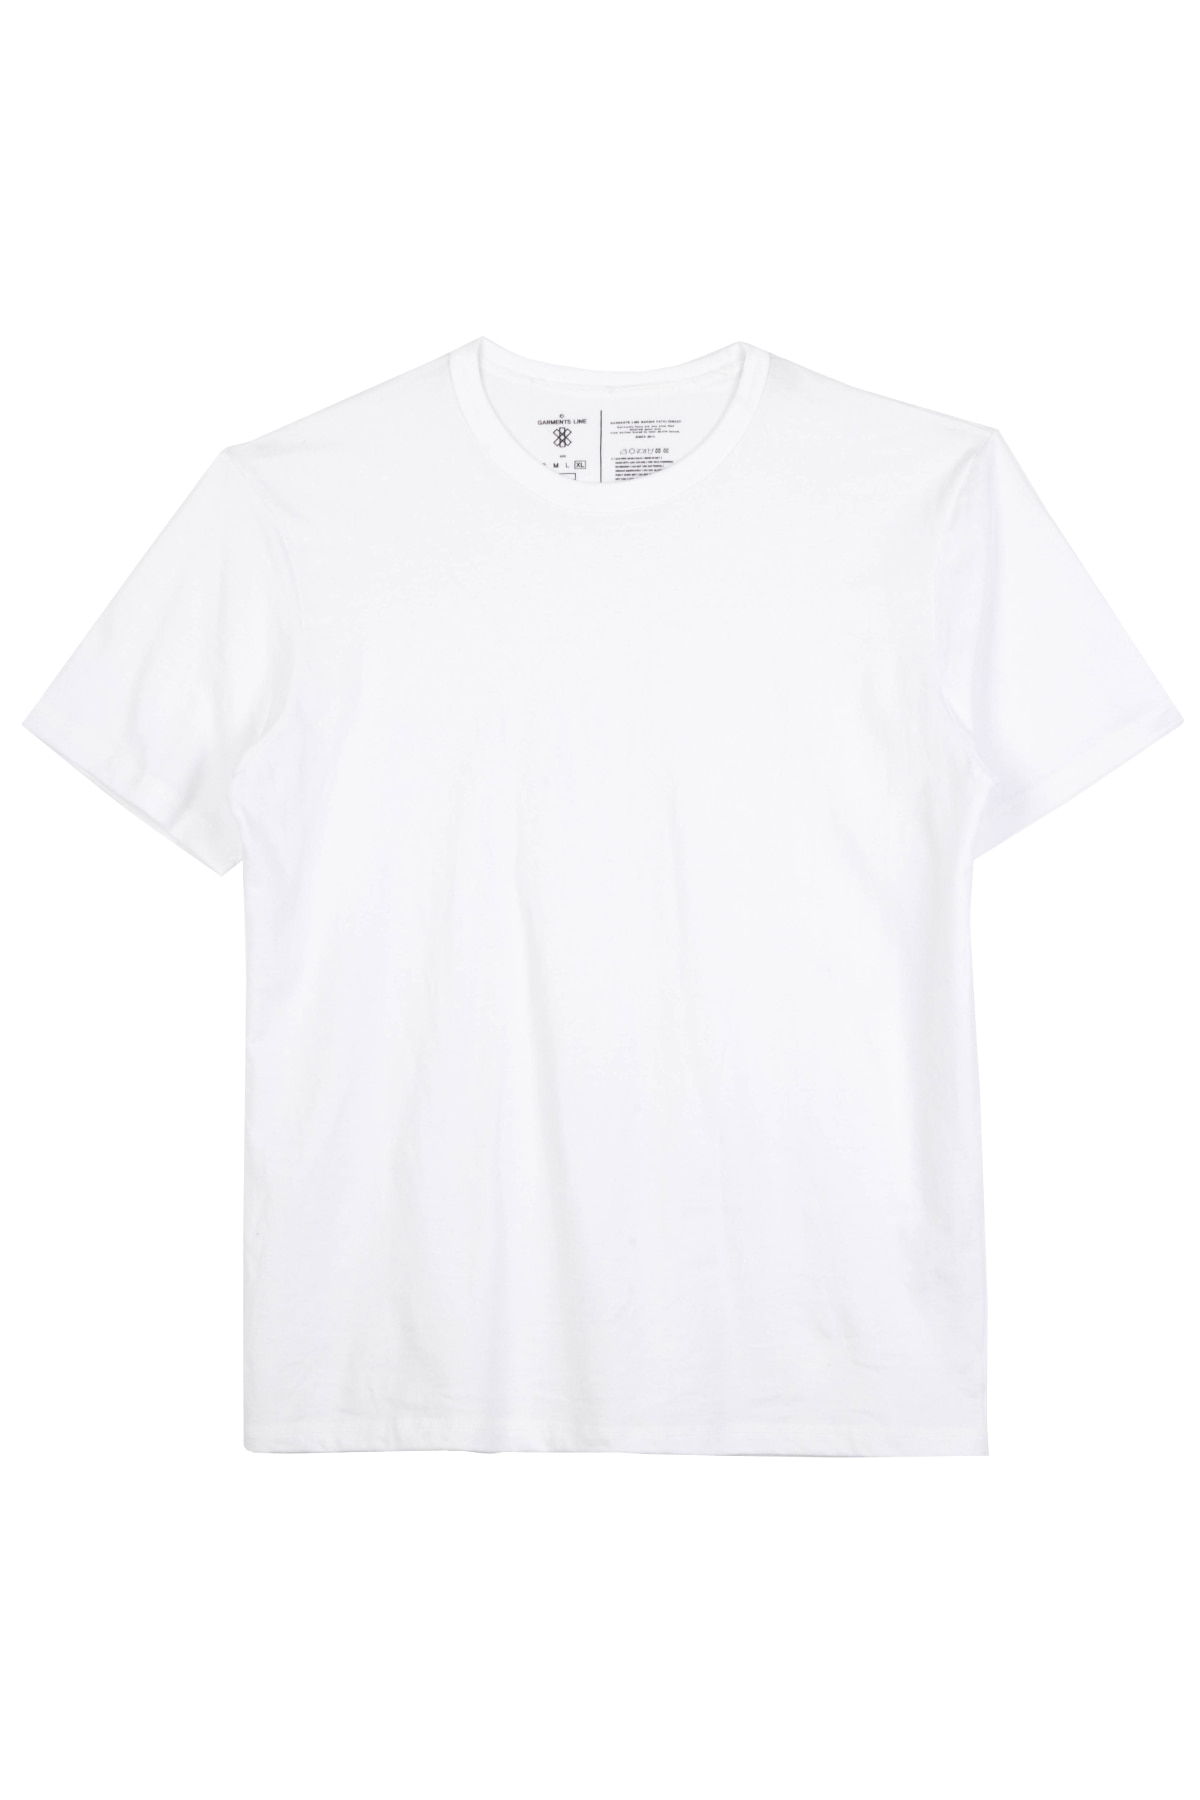 #G019 GML-Semi over Fit T-shirt (white)